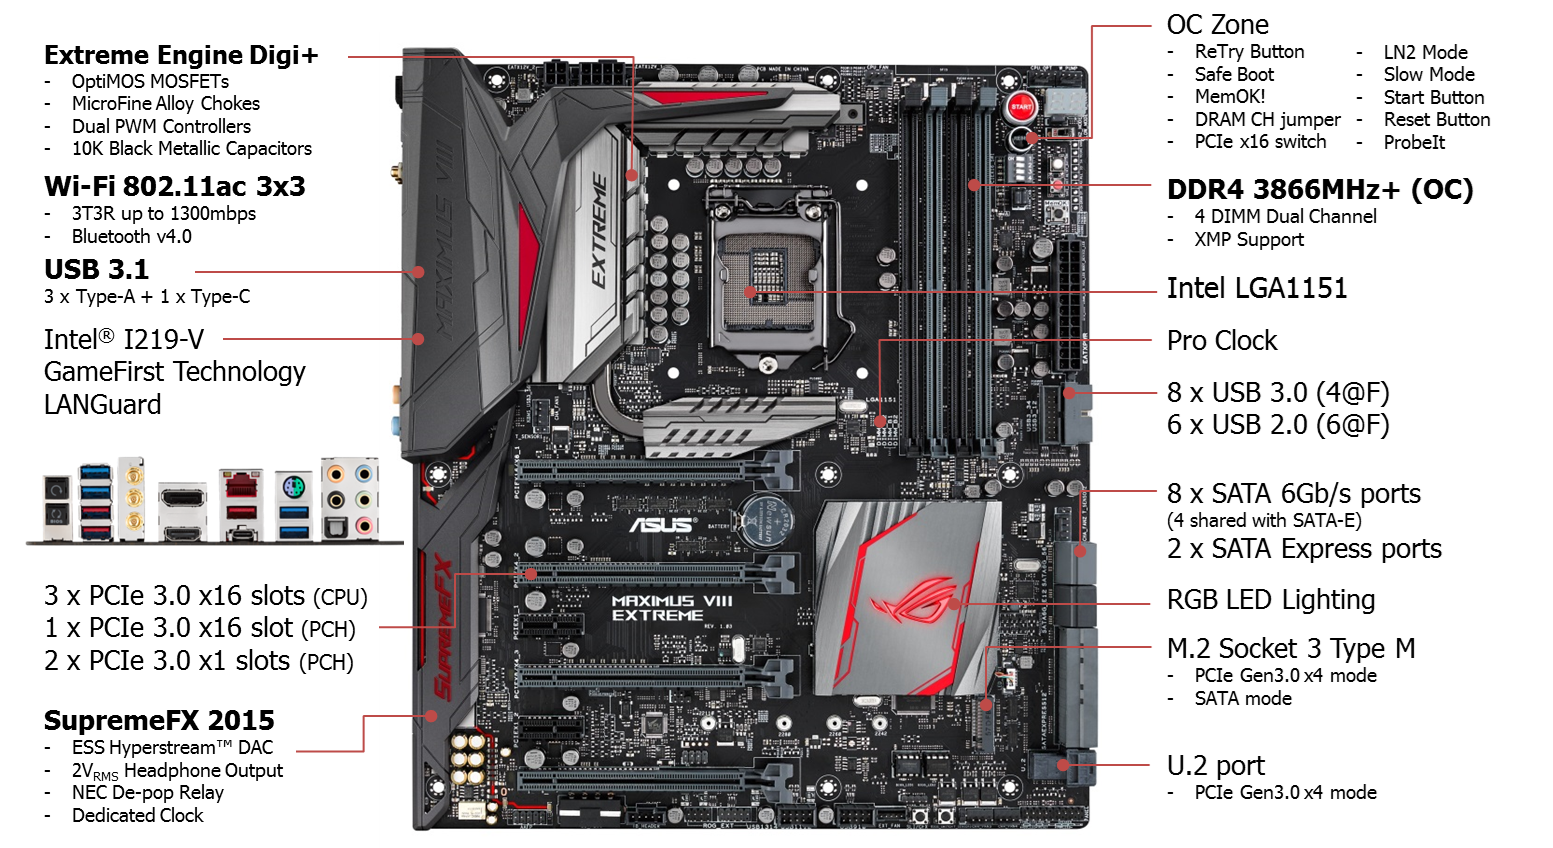 Asus Rog Lga1151 Wi Fi M2 U2 Usb 31 Z170 E Atx Mb Basic Computer Components Diagram Related View Larger